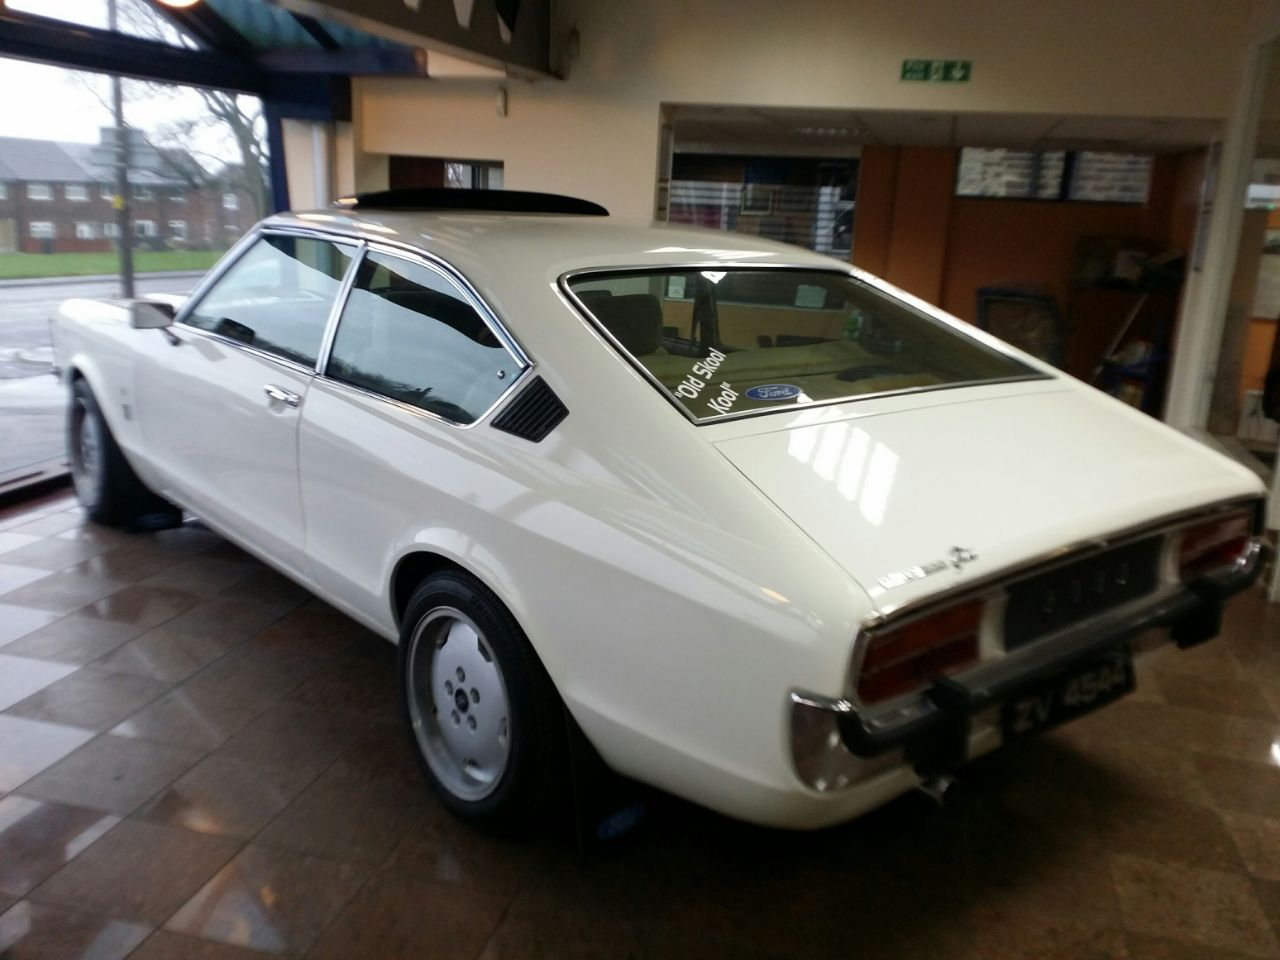 Used ford granada 1 for sale in halifax west yorkshire for Used ford motors sale